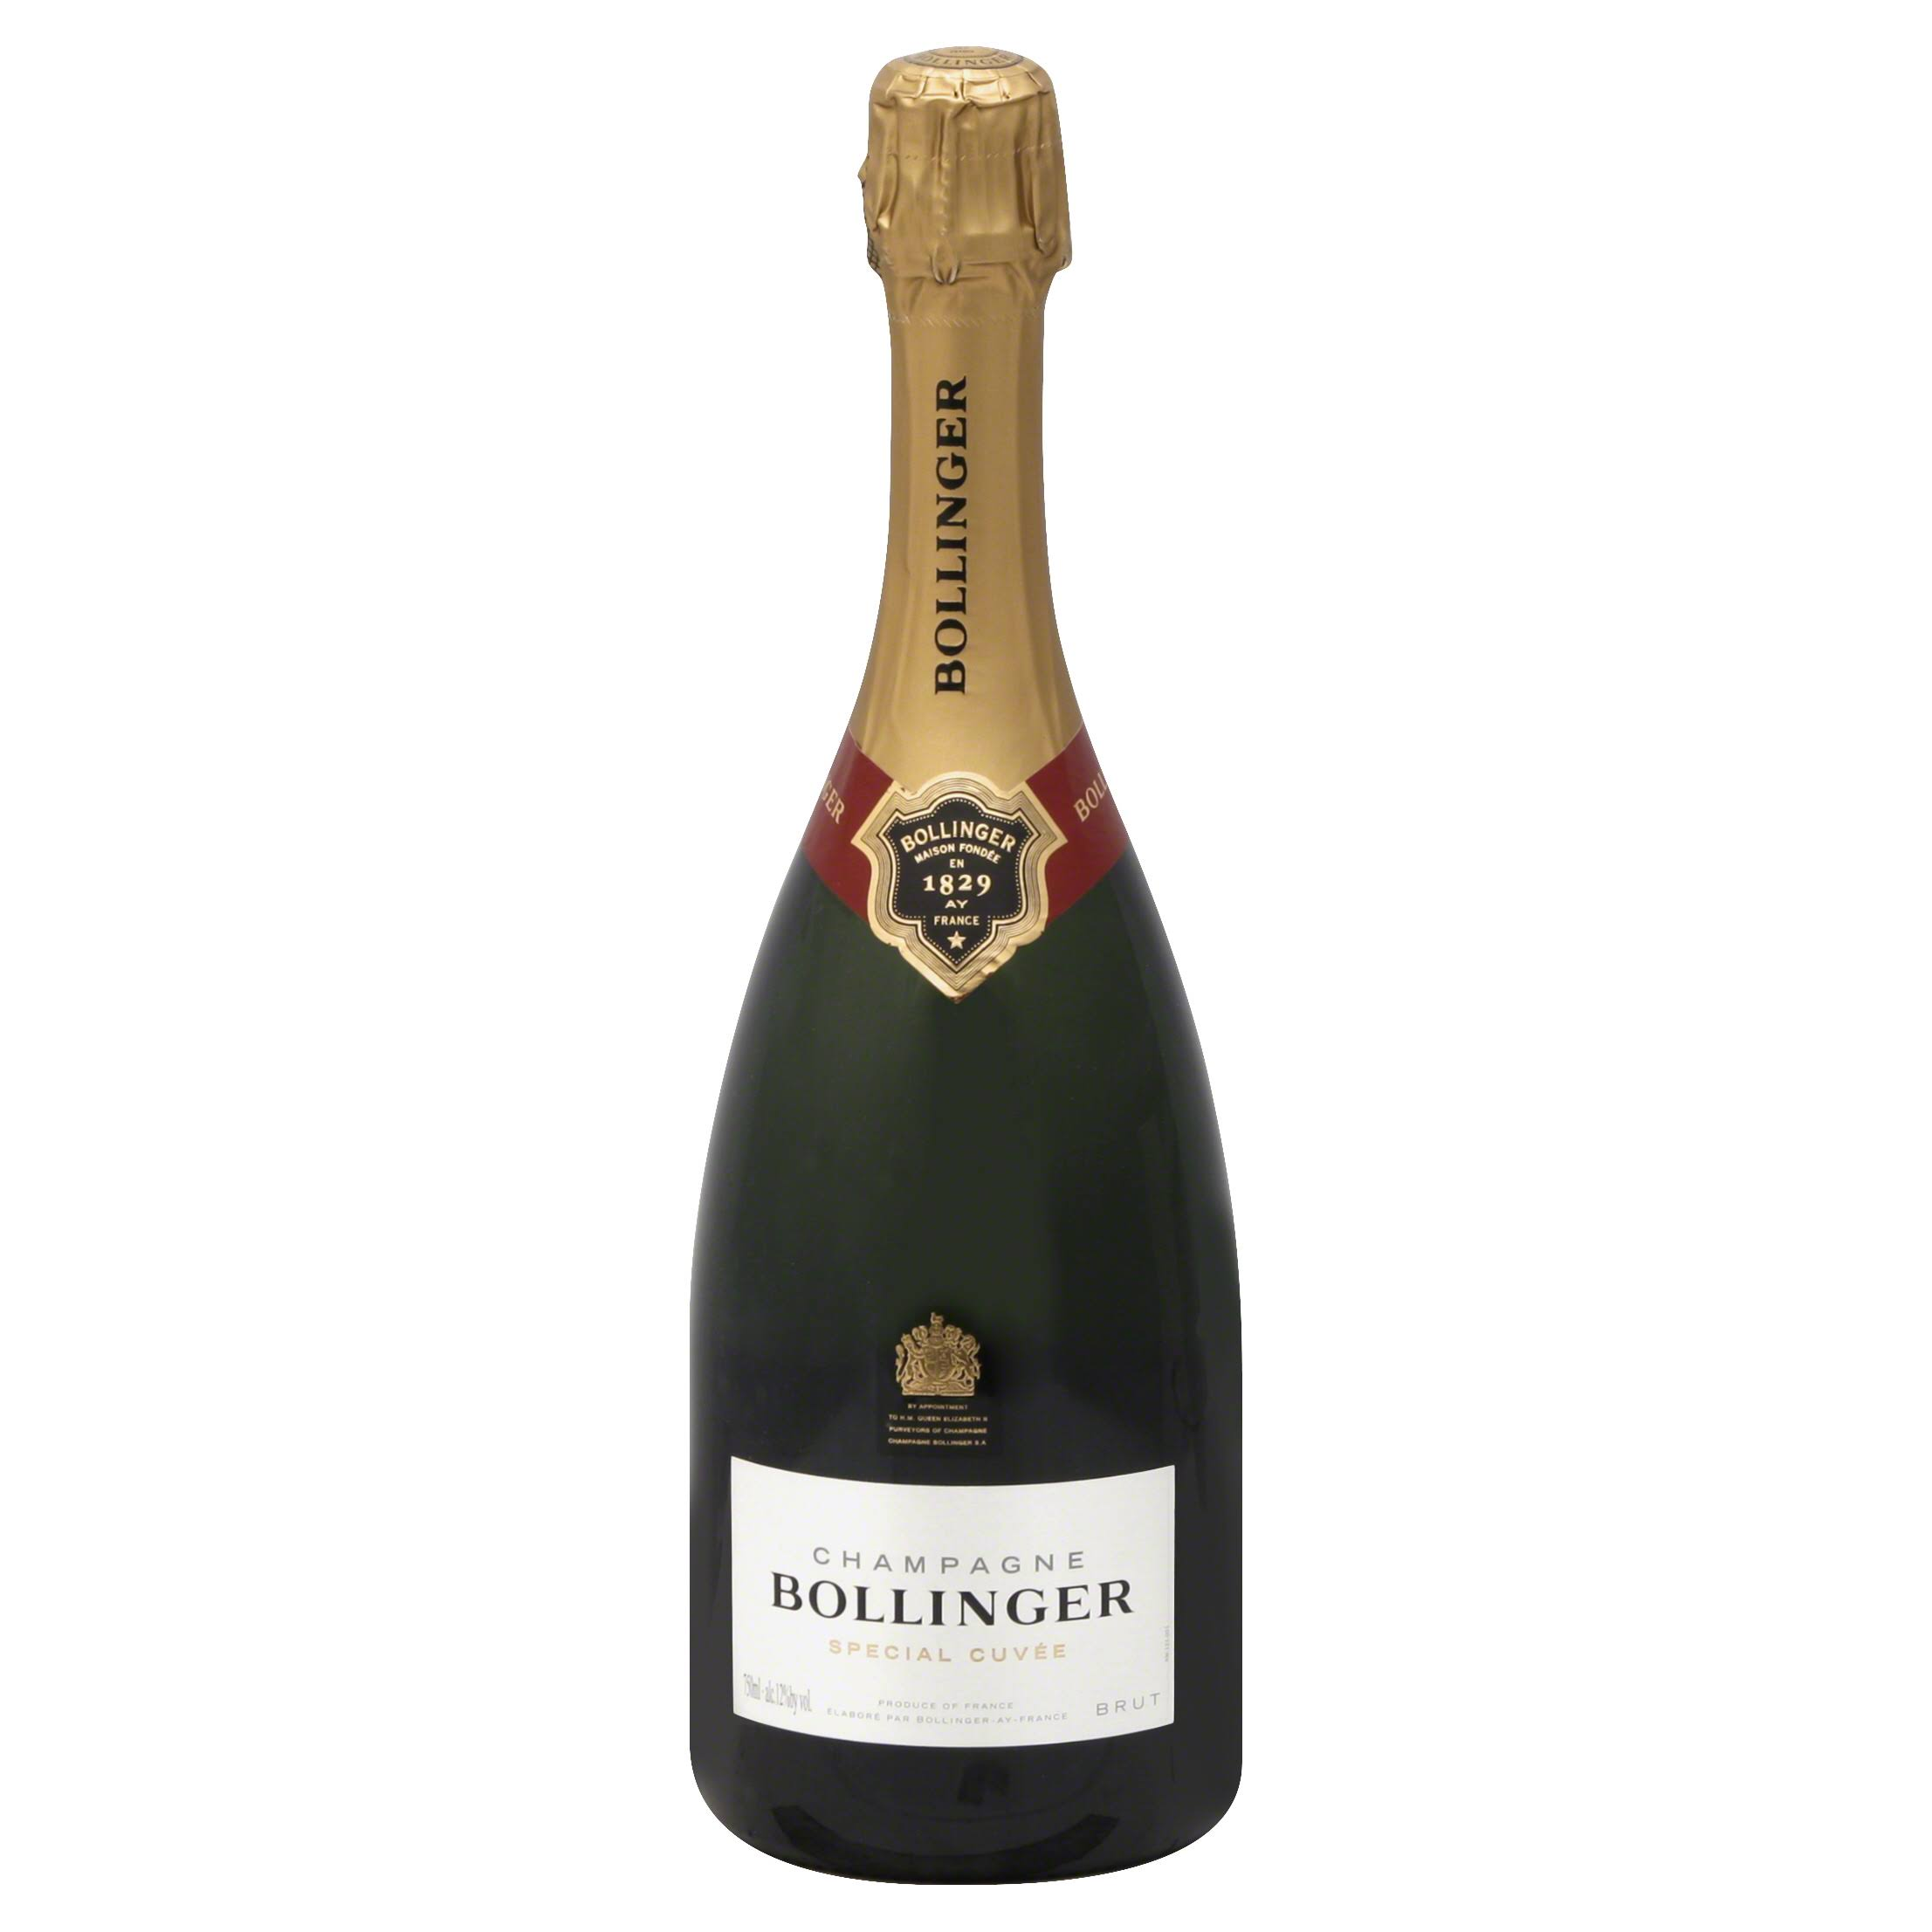 Bollinger Champagne, Special Cuvee, Brut - 750 ml